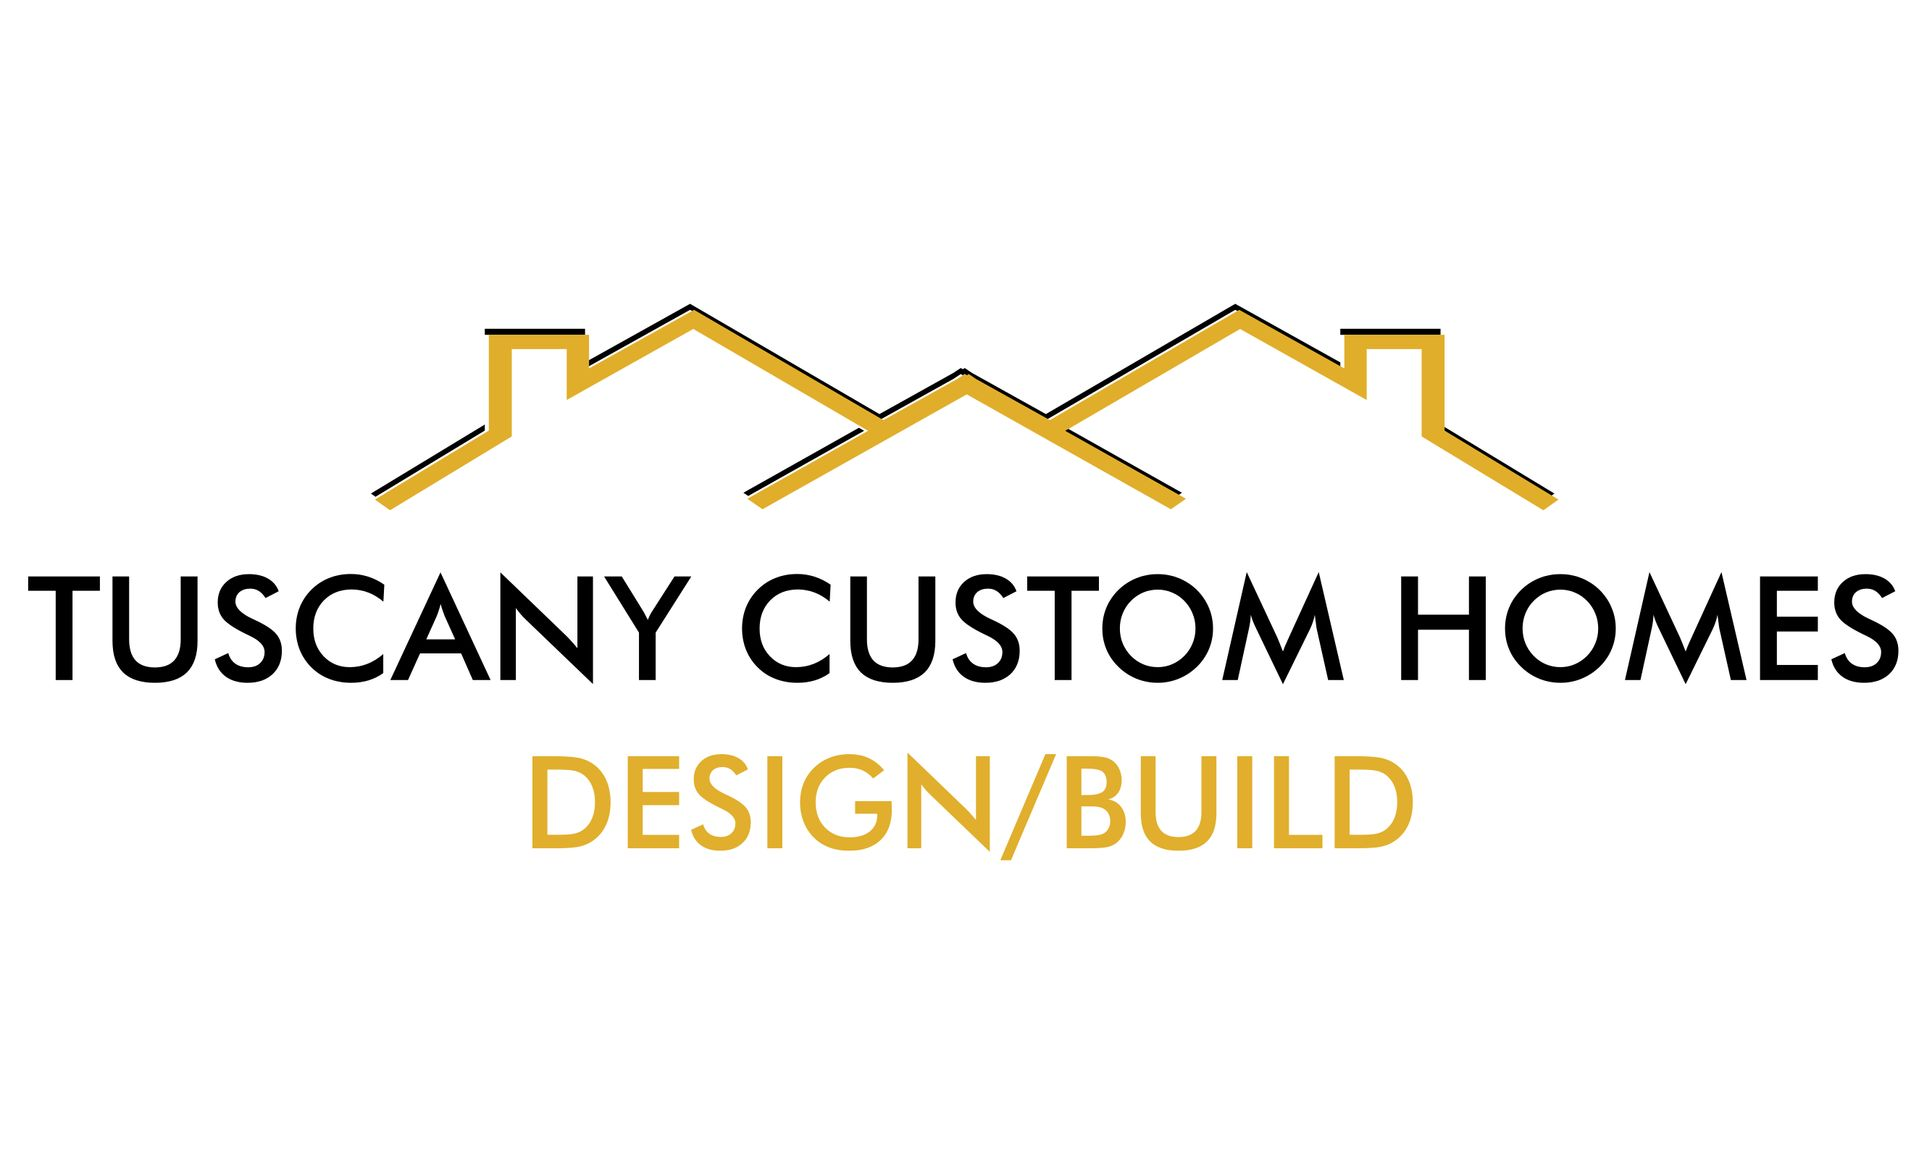 Tuscany Custom Homes,80537